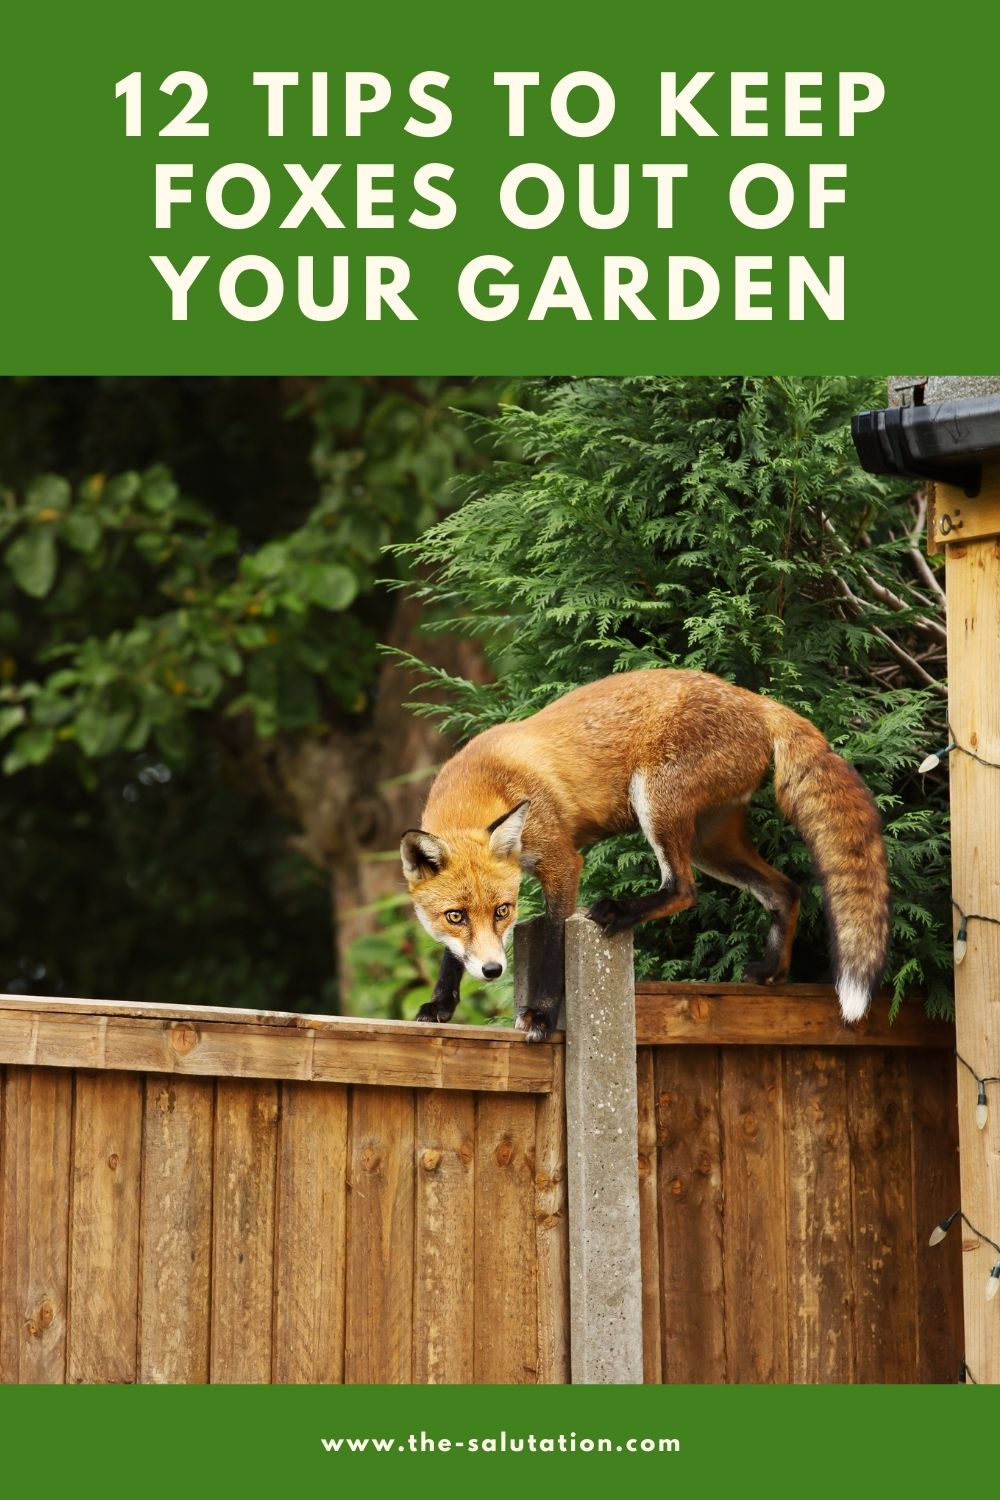 12 Tips to Keep Foxes Out of Your Garden 1